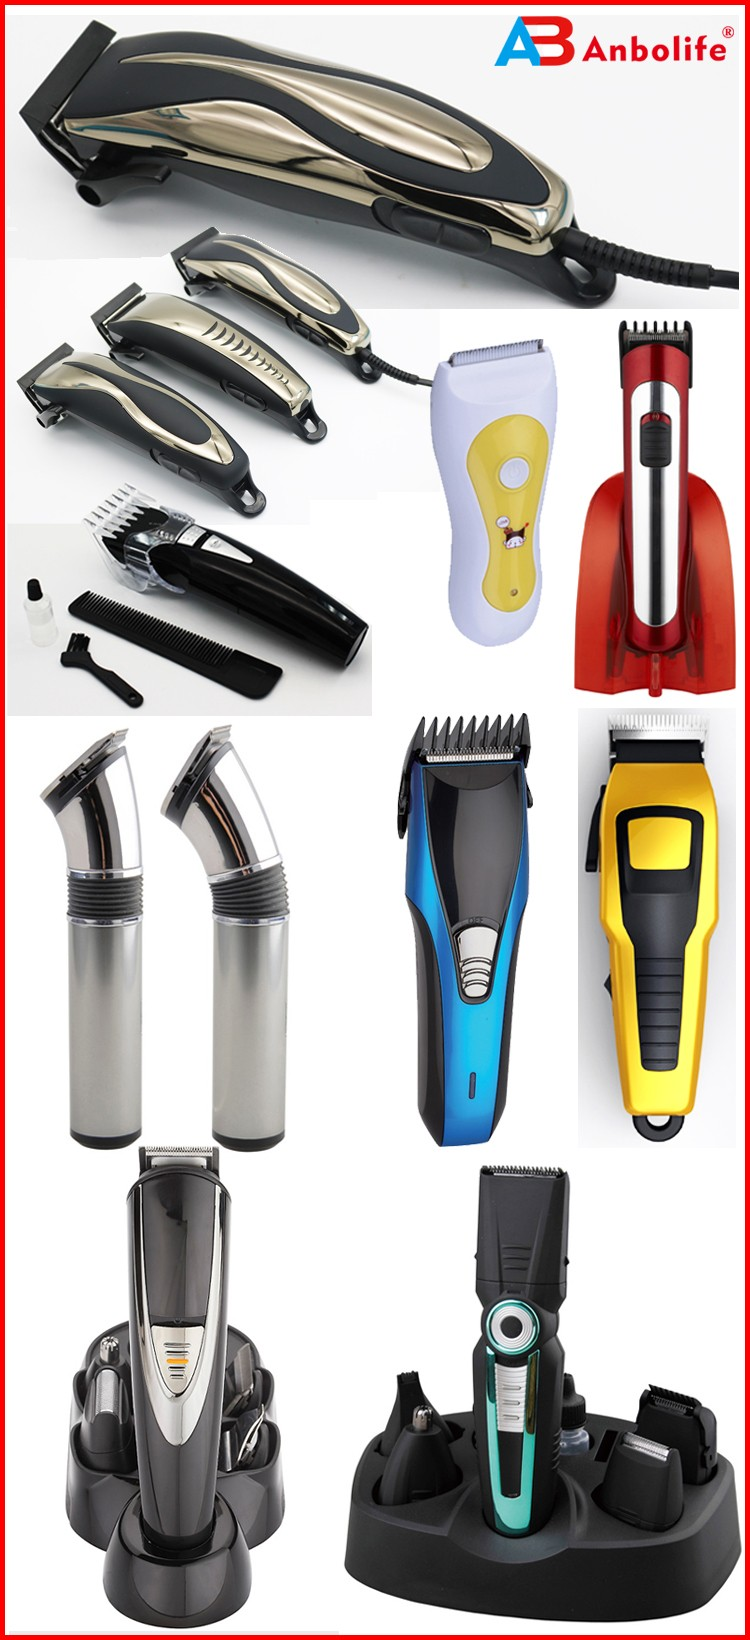 how to clean hair clippers with alcohol